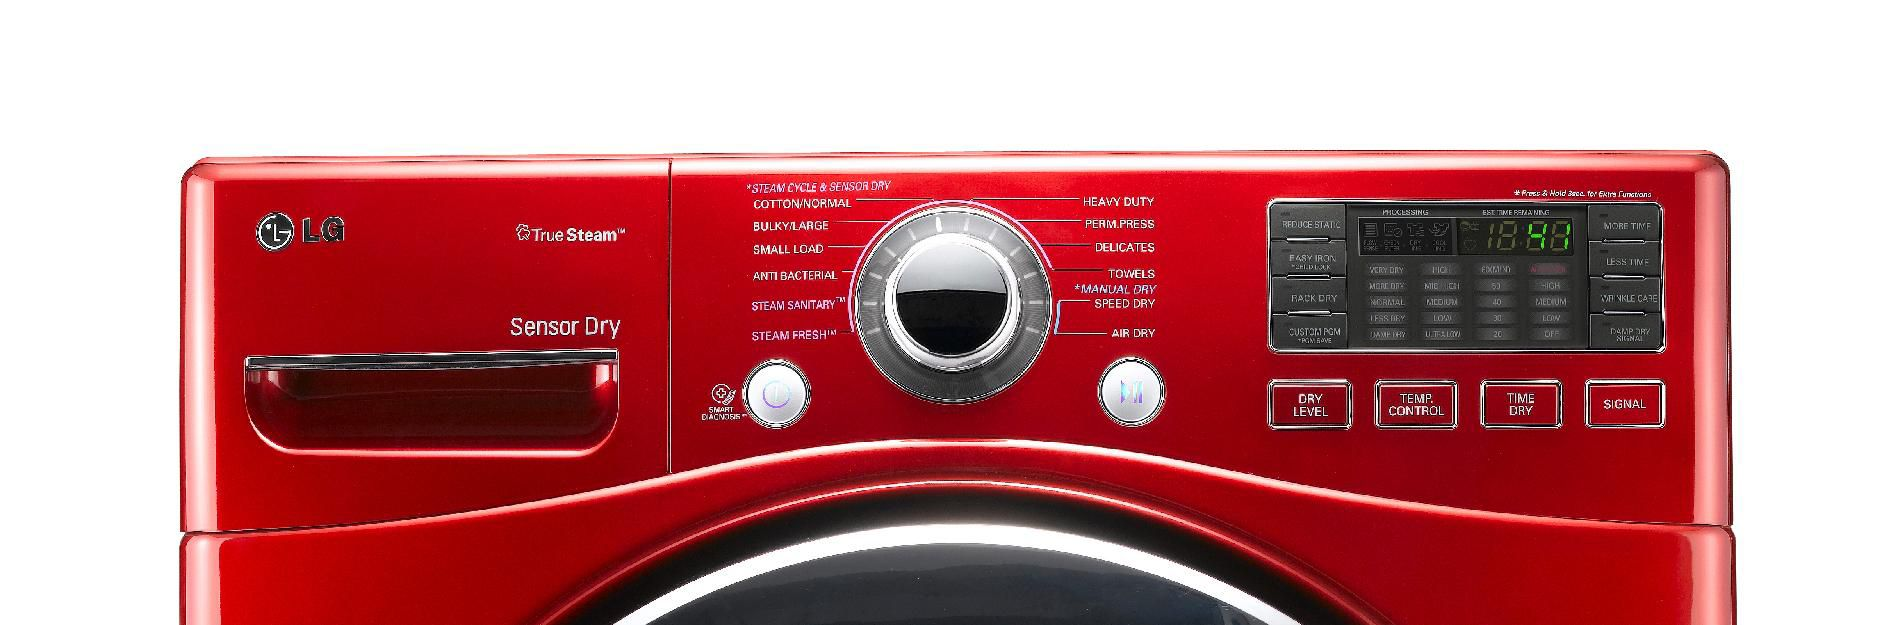 LG 7.3 cu. ft. Steam Electric Dryer w/ Sensor Dry - Red